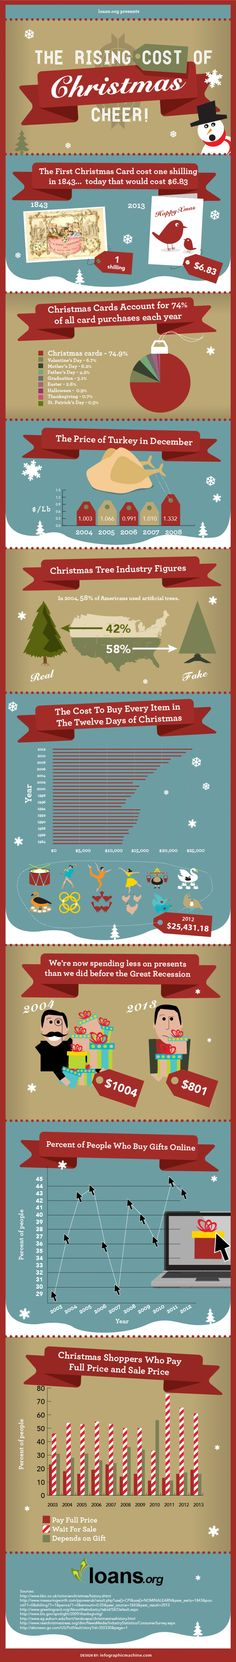 The Cost of Christmas Infographic